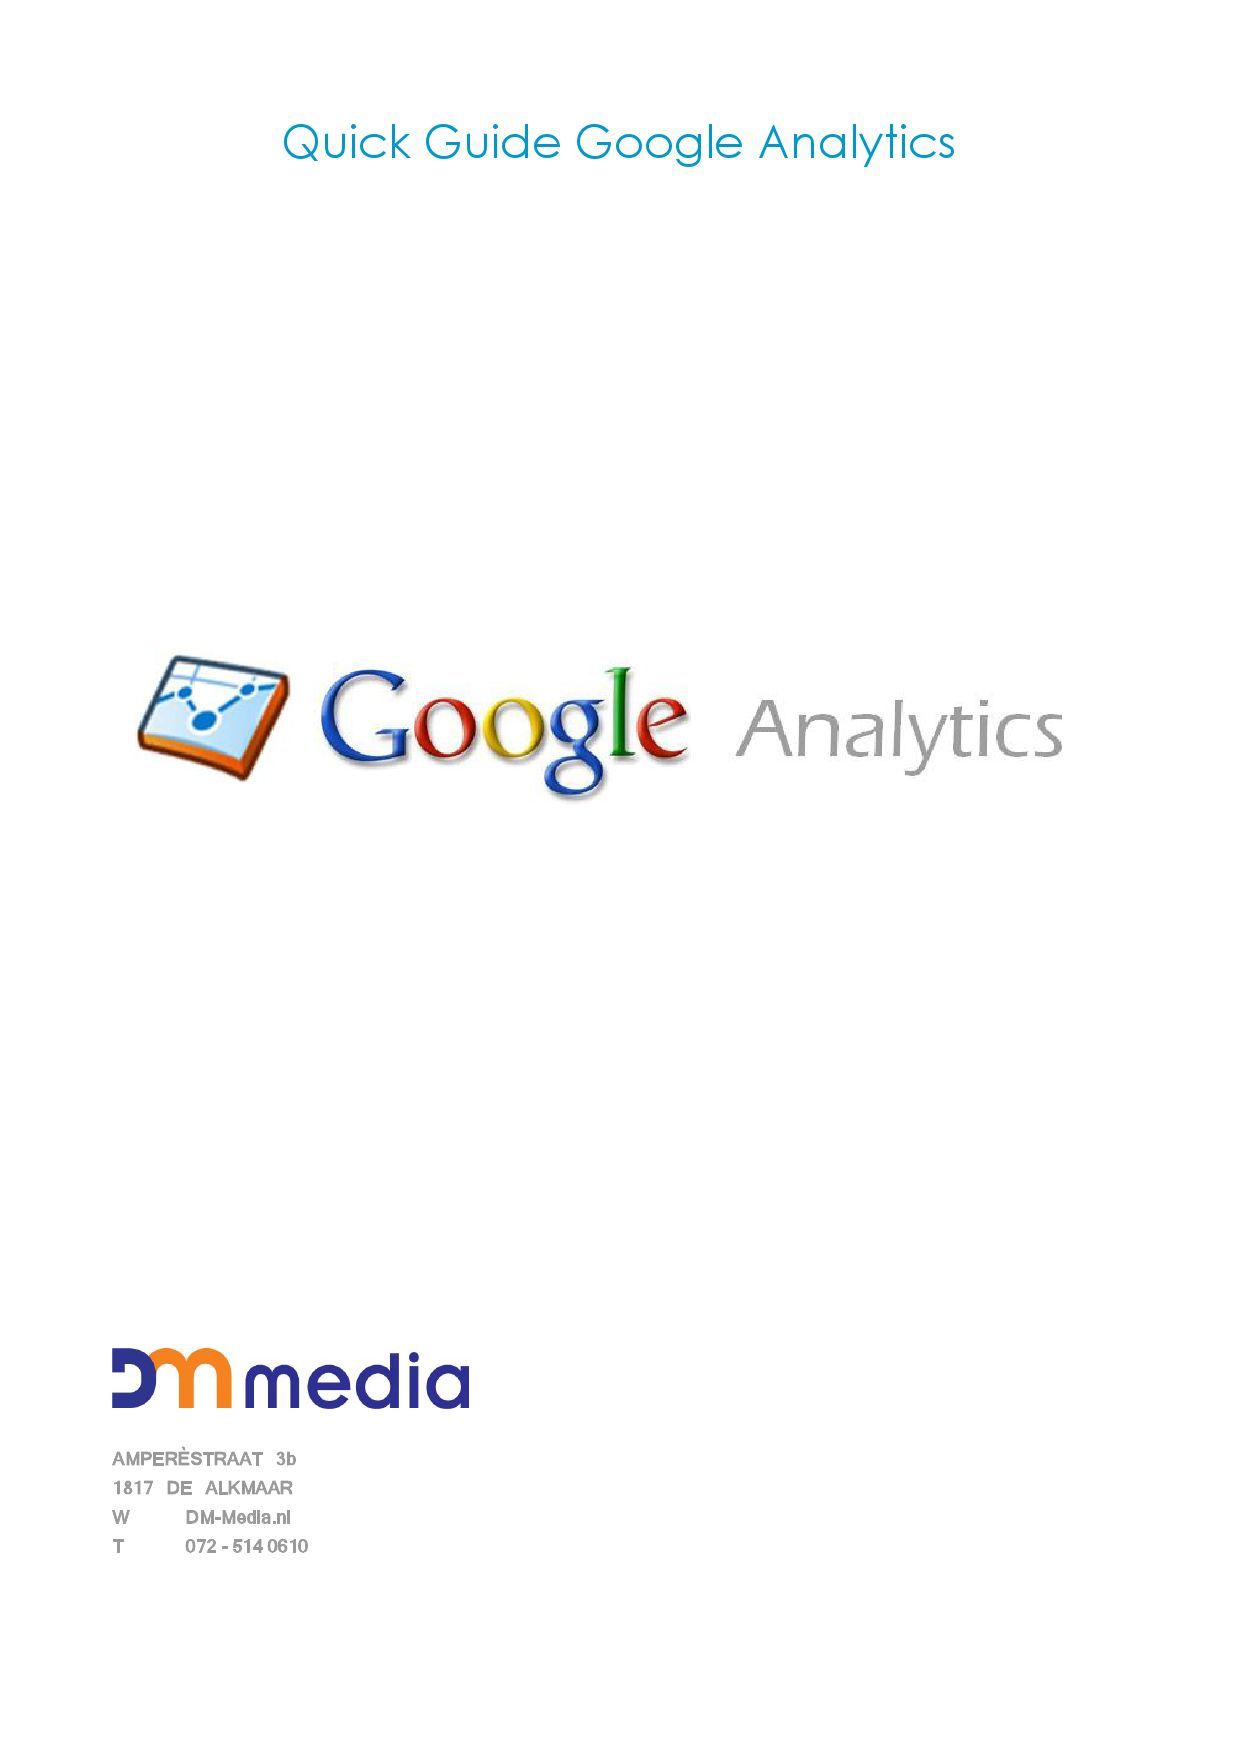 a quick guide to google analytics A quick guide to google analytics 4 minute read here at sign-upto, as well as our own advanced email tracking, you can also track your email campaign's success at driving traffic to your.